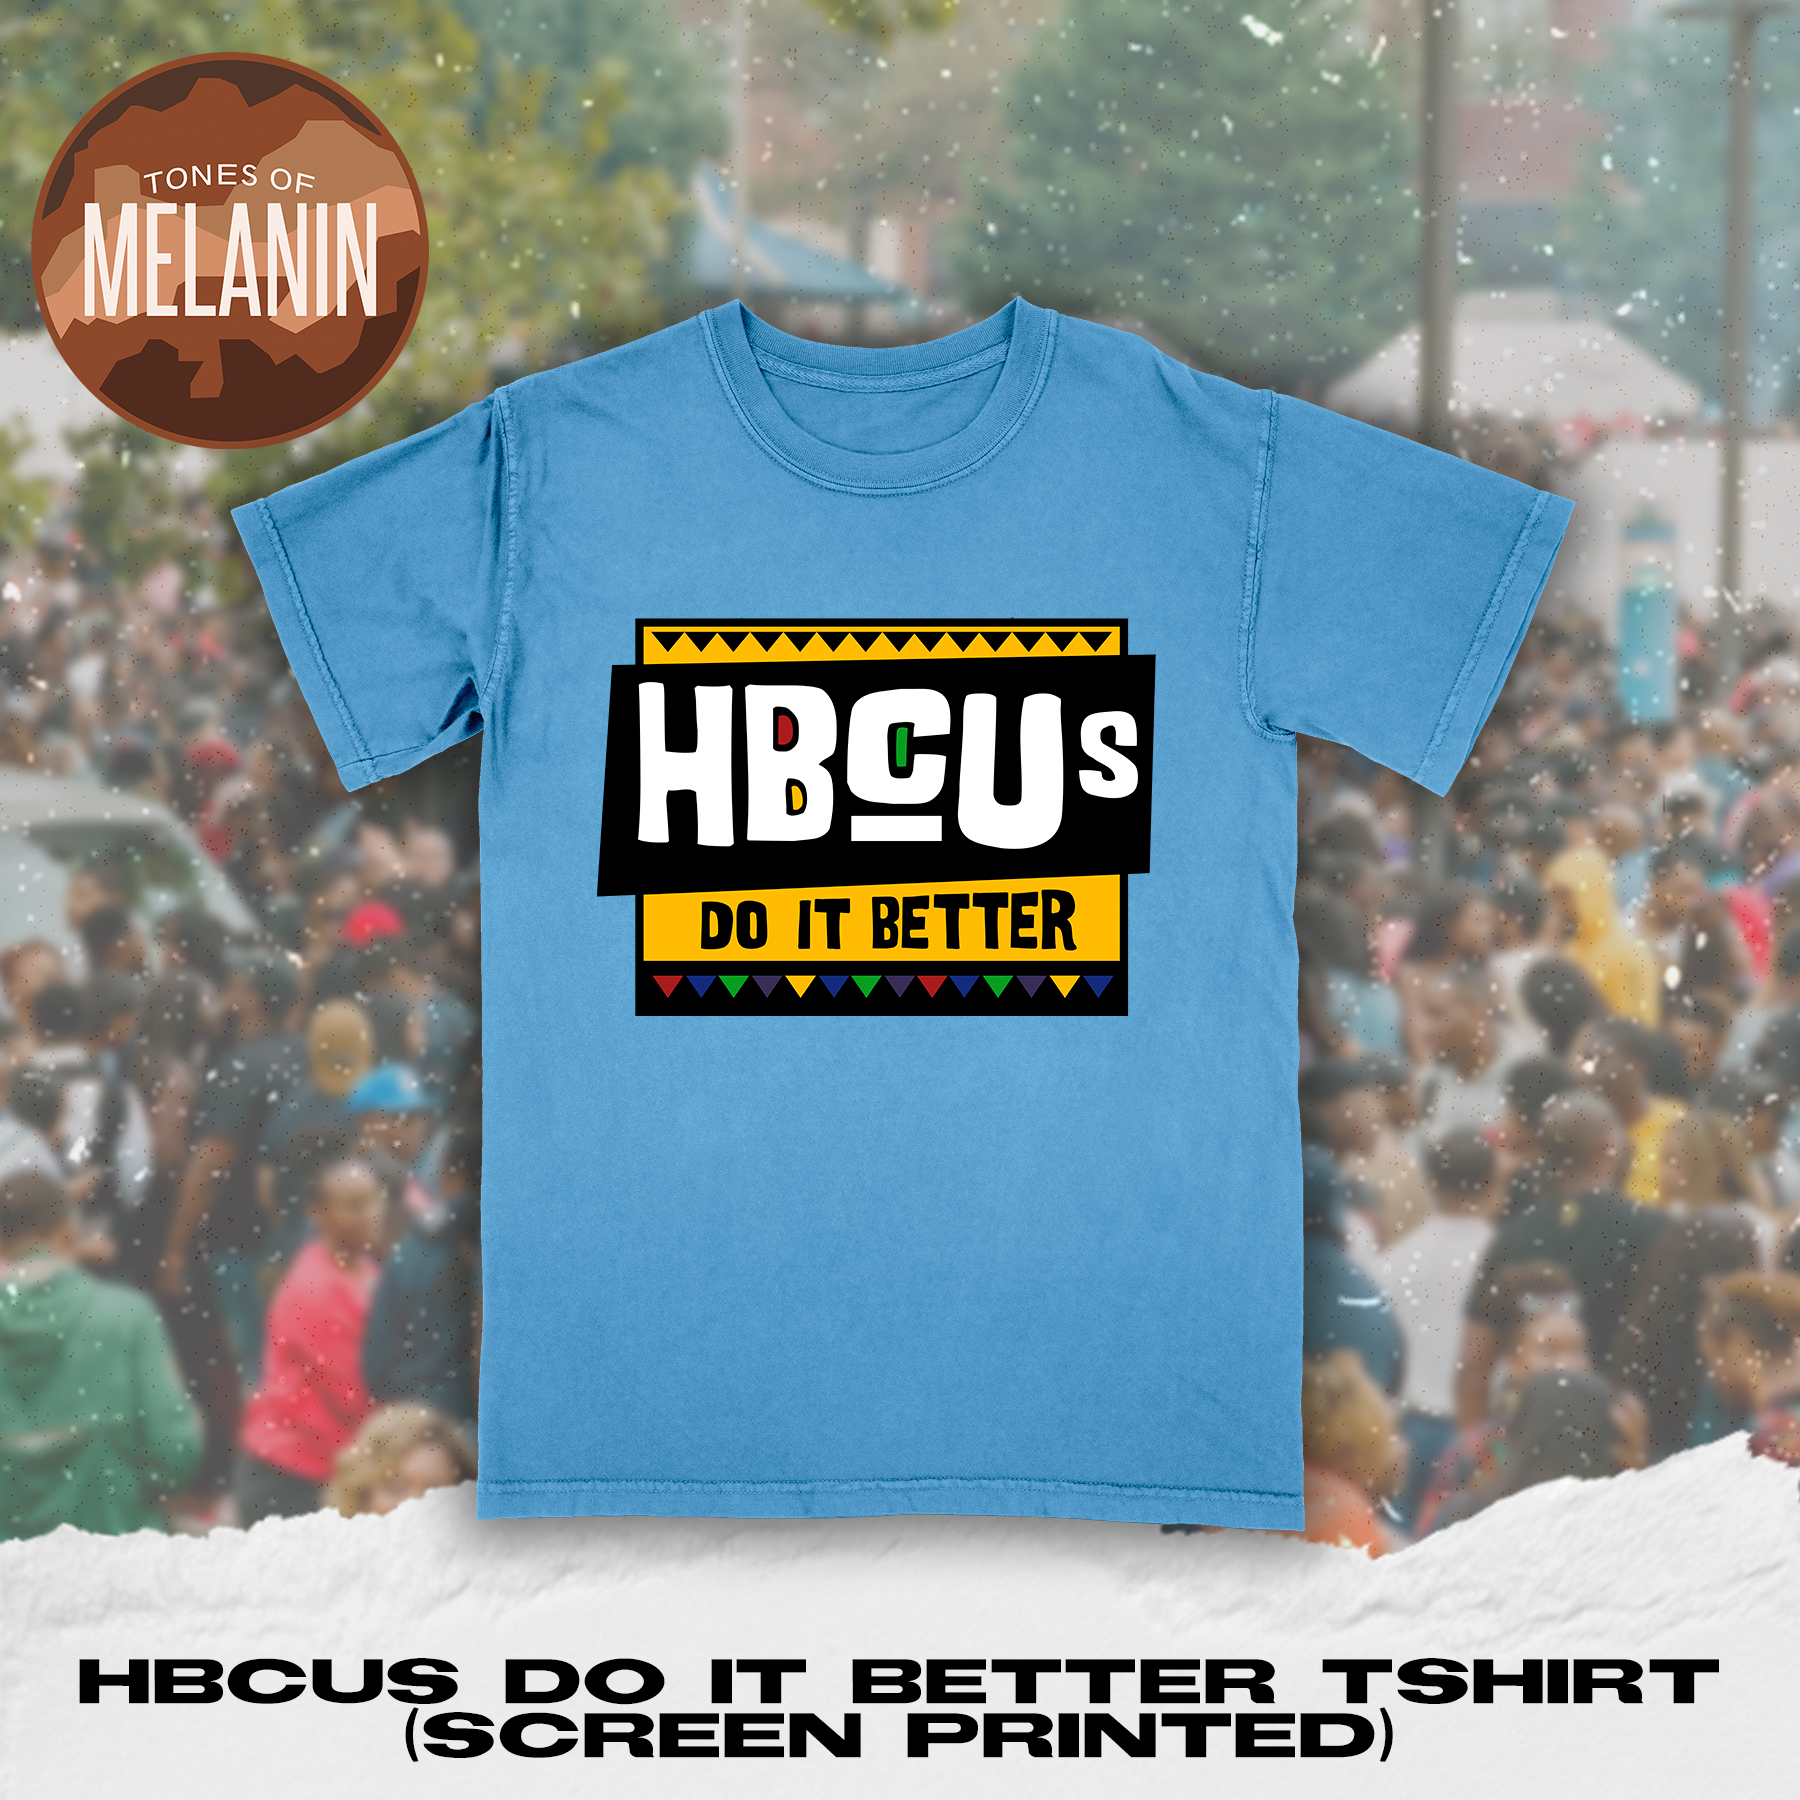 Light Blue HBCUs Do It Better Tshirt (Screen Printed)